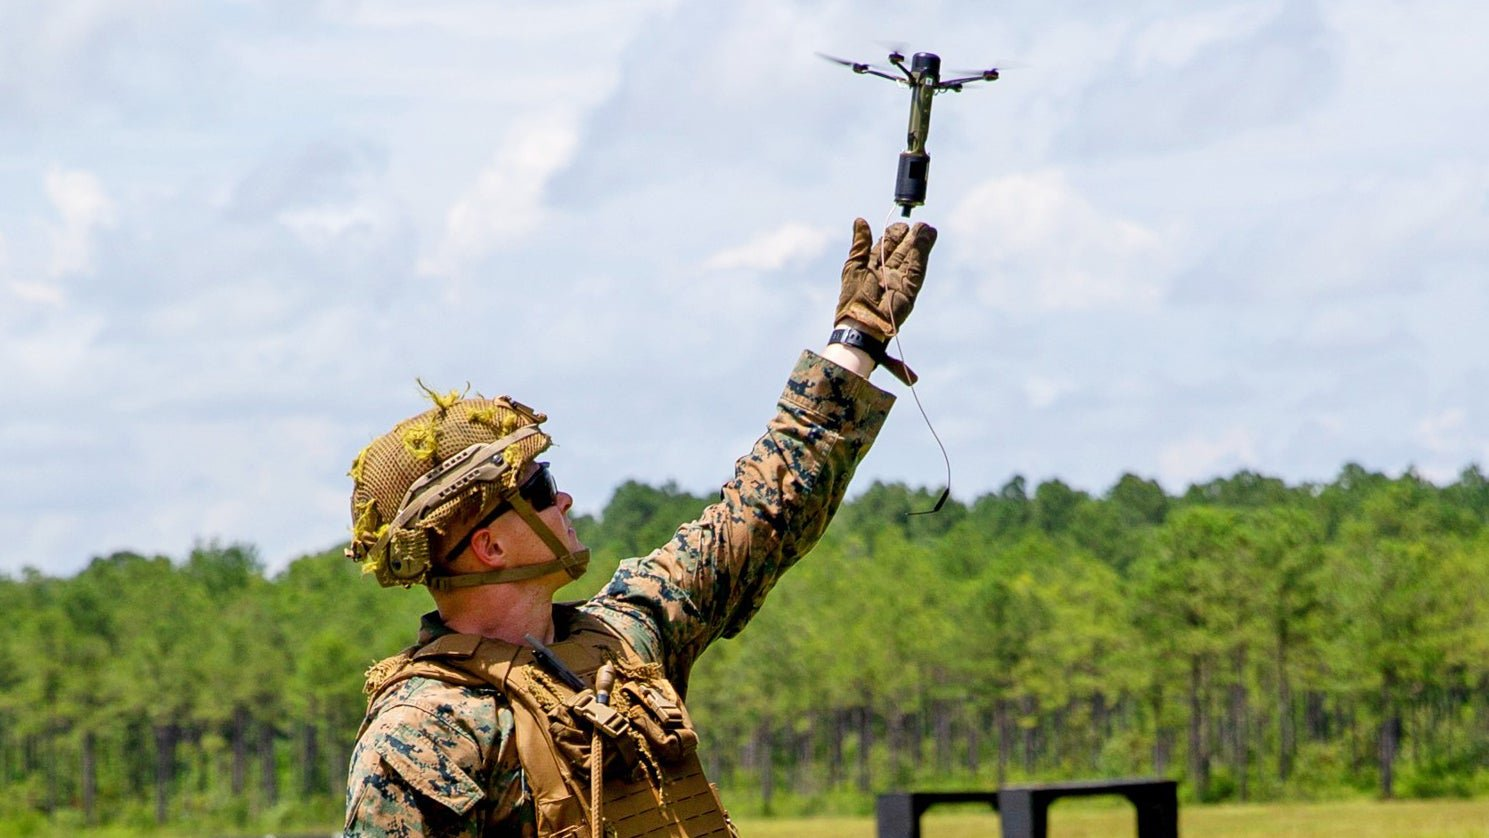 Marines Train With Handheld Swarming Drones That Can Also Be Fired From 40mm Grenade Launchers